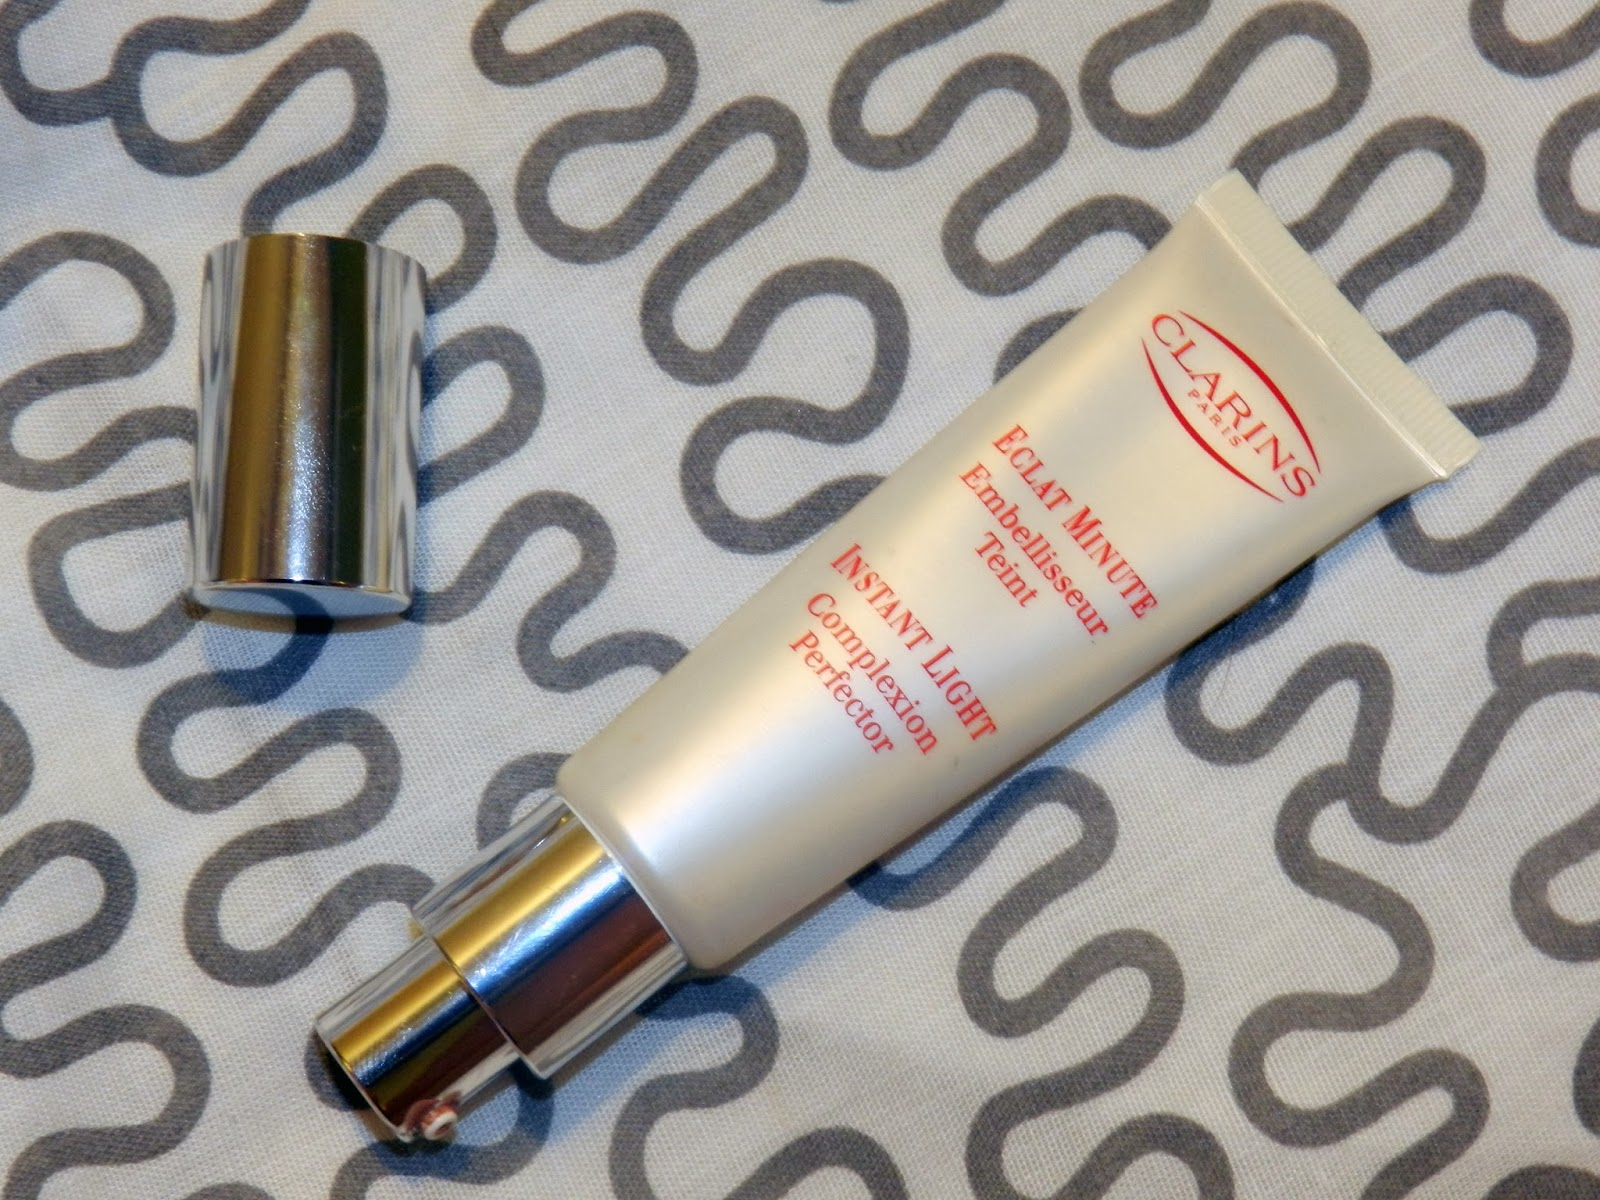 Clarins Instant Light Complexion Perfector in 03 Bronze Shimmer